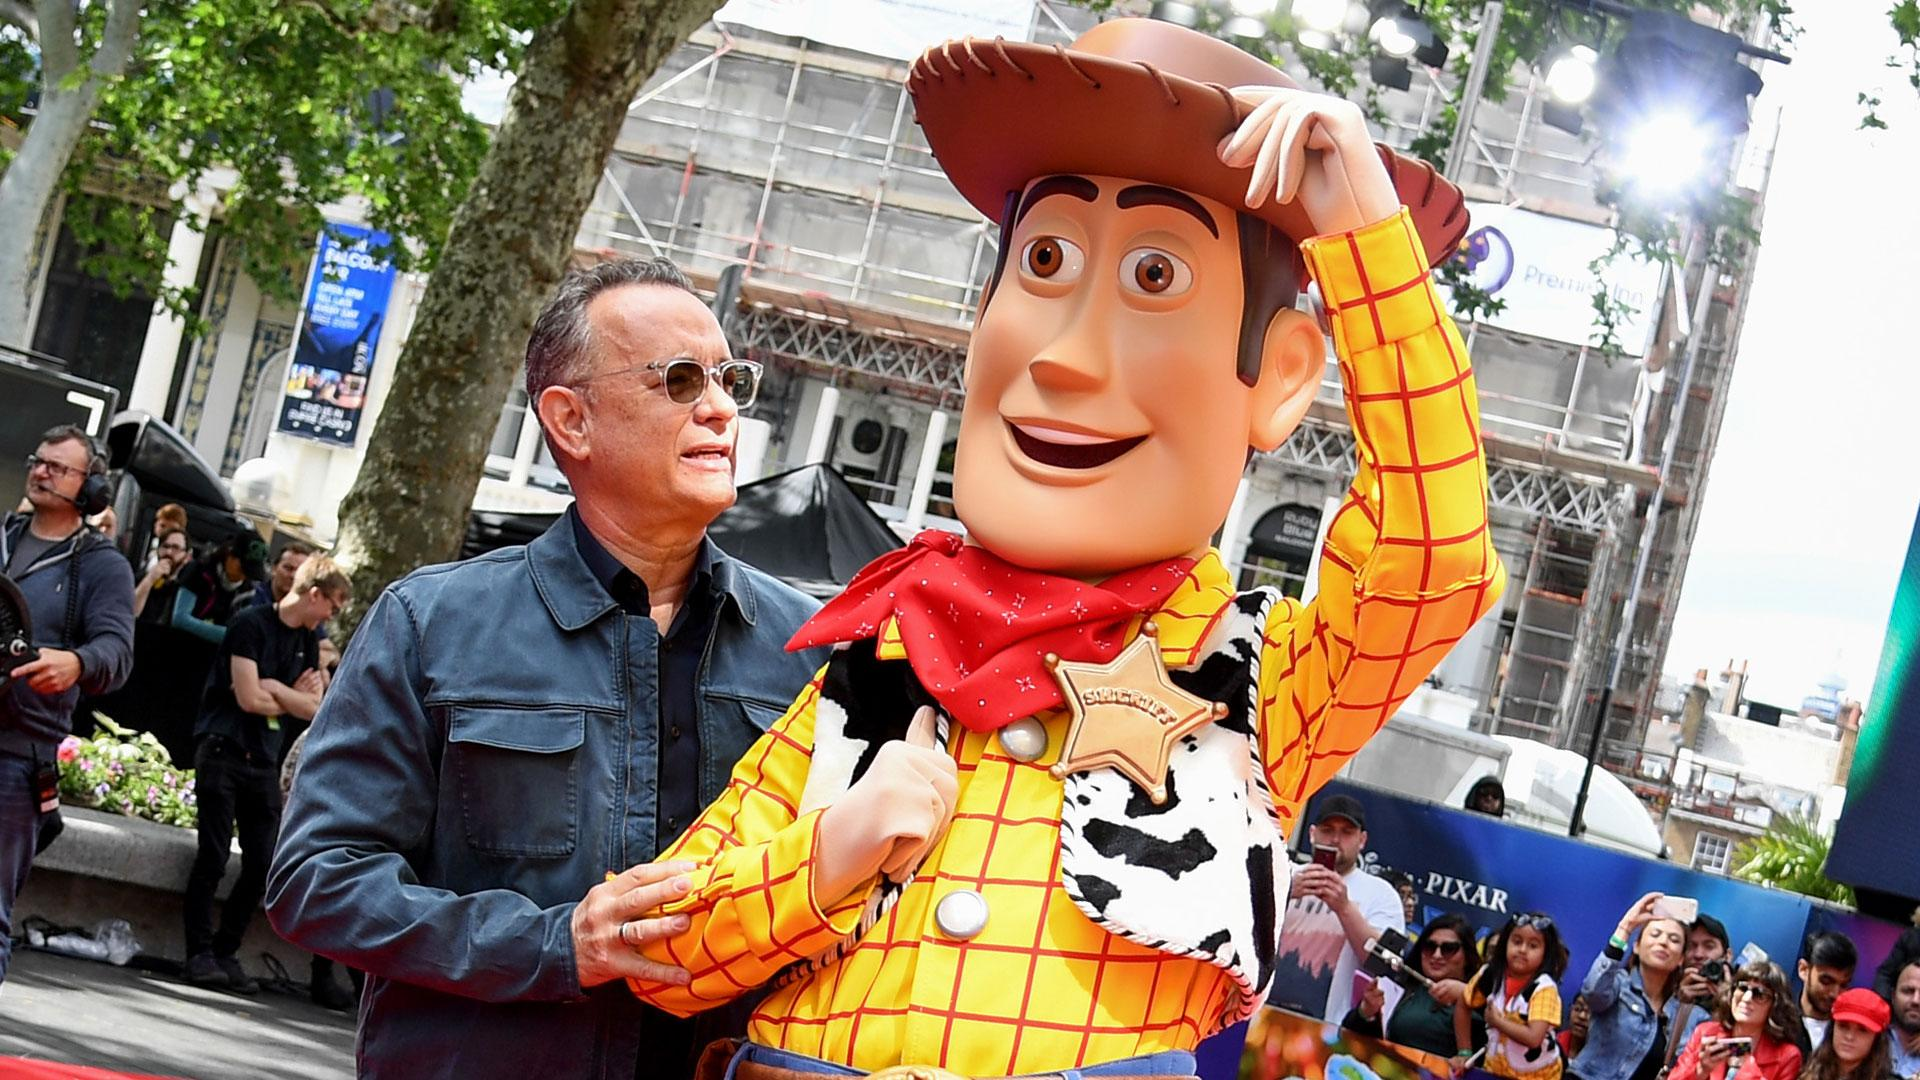 Tom Hanks and Woody attend the European premiere of Disney and Pixar's <i>Toy Story 4</i>. (Photo by Gareth Cattermole/Getty Images for Disney and Pixar)